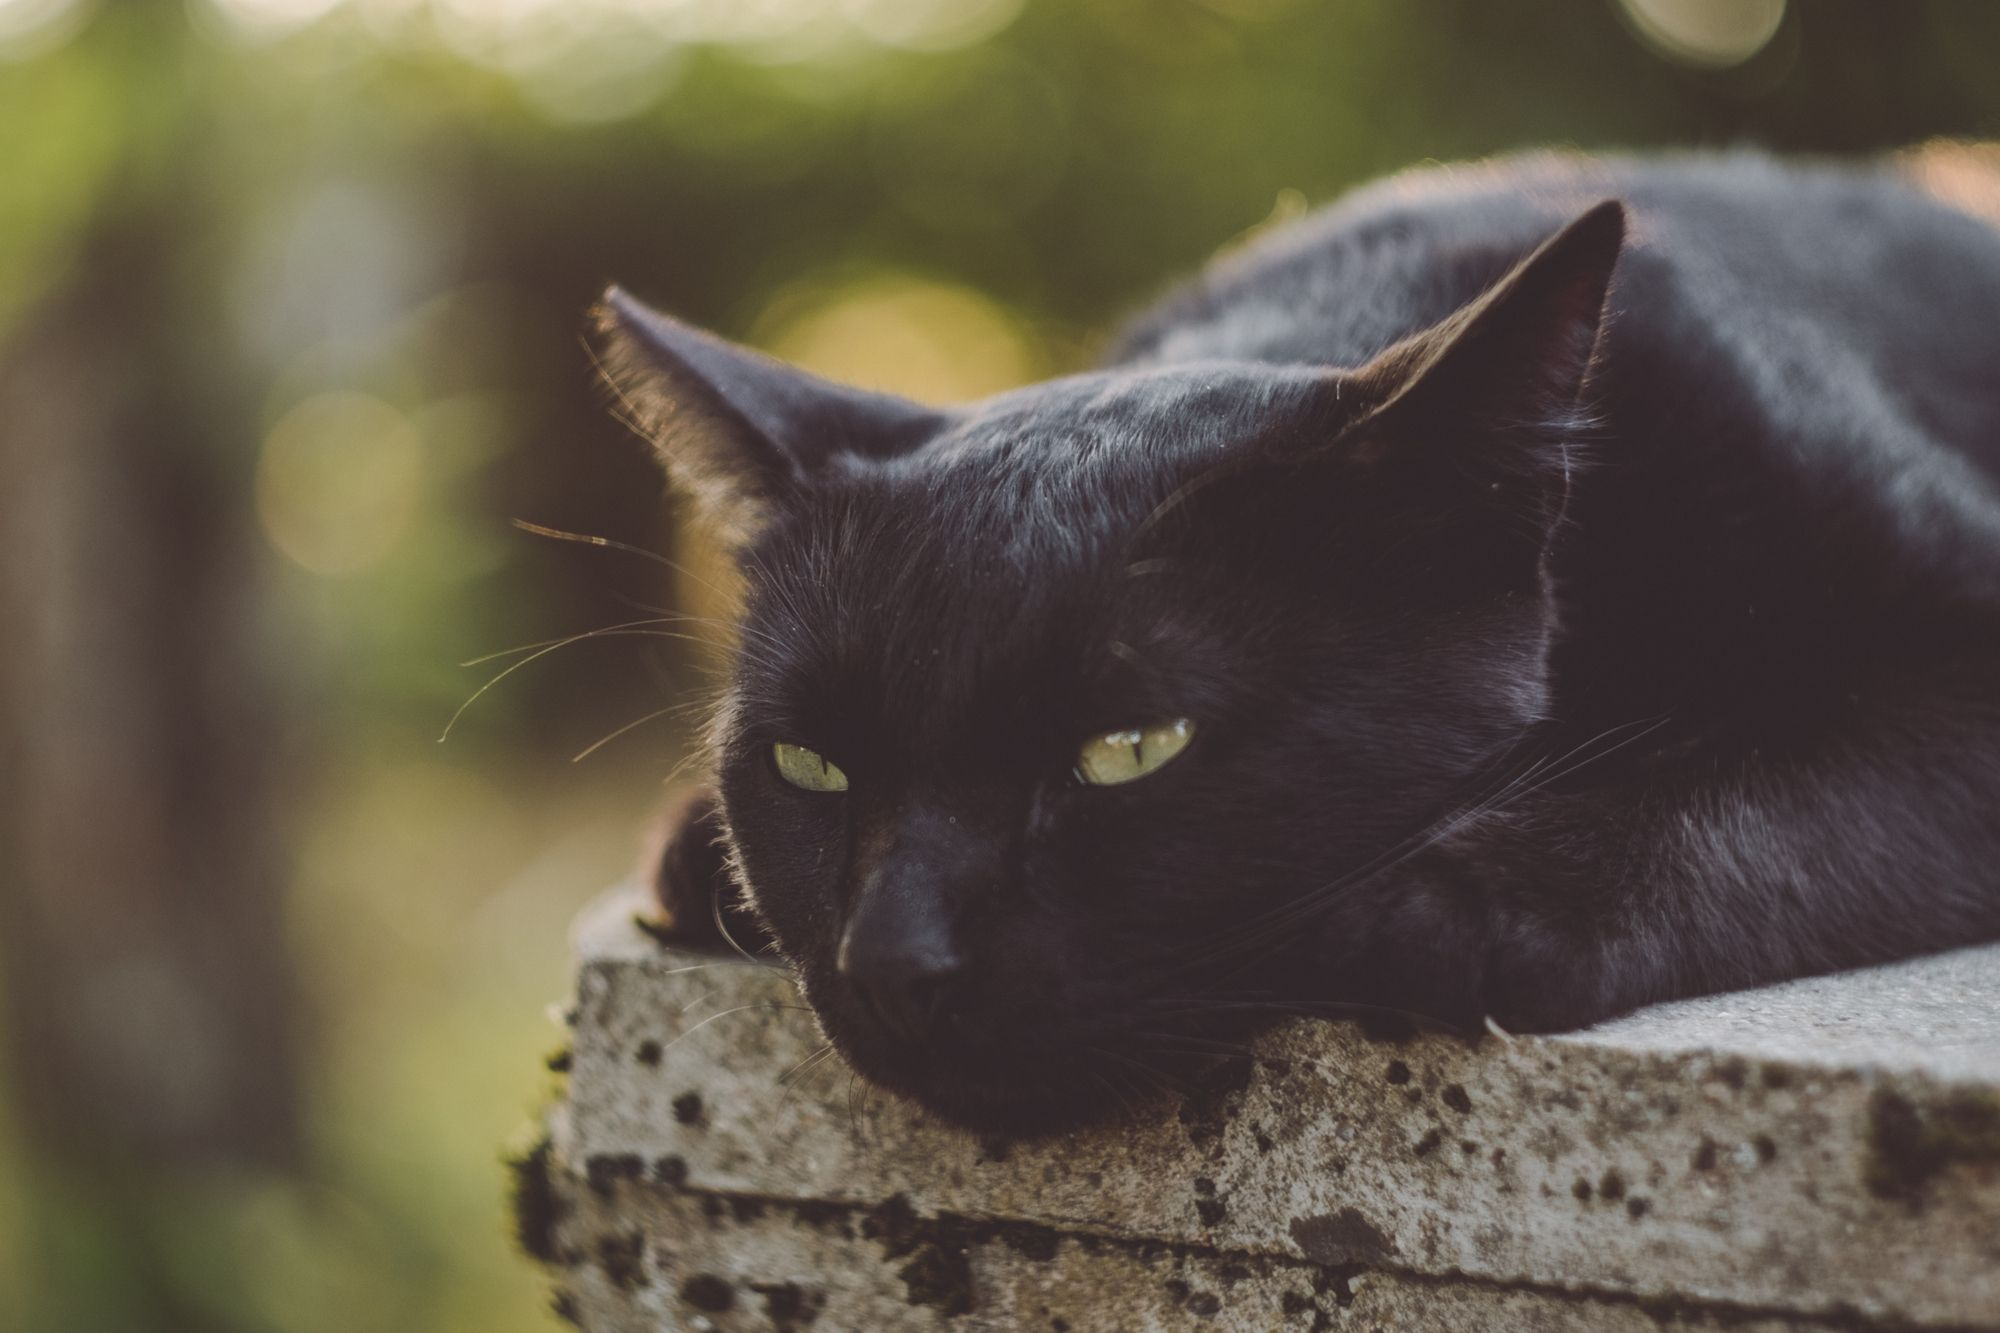 Many people around the globe believe that black cats bring